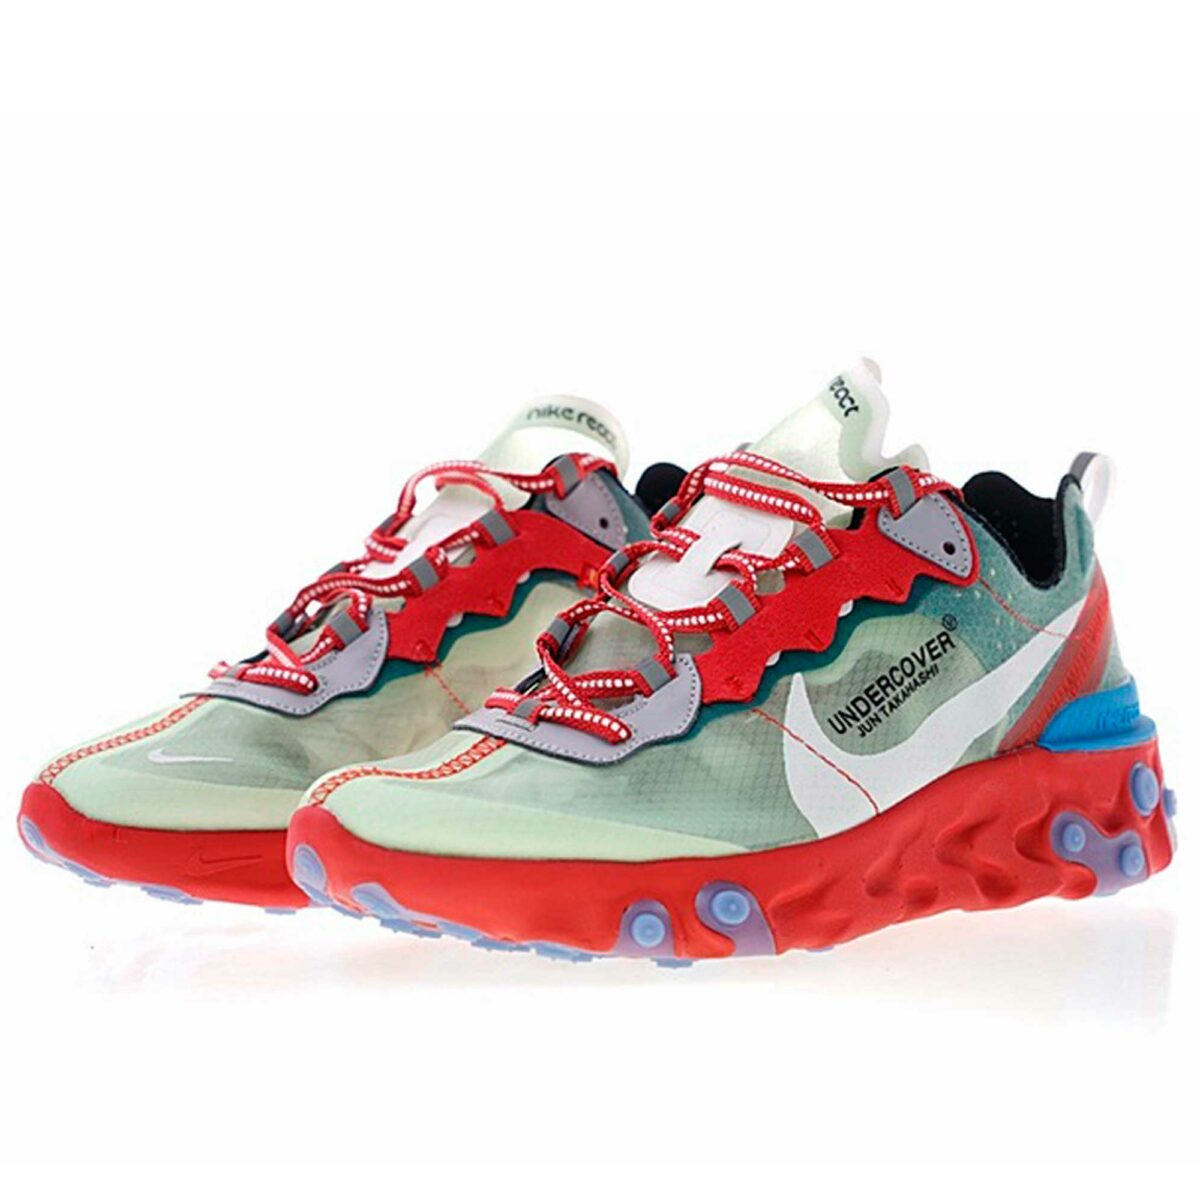 undercover x nike react element 87 volt bq2718_100 купить